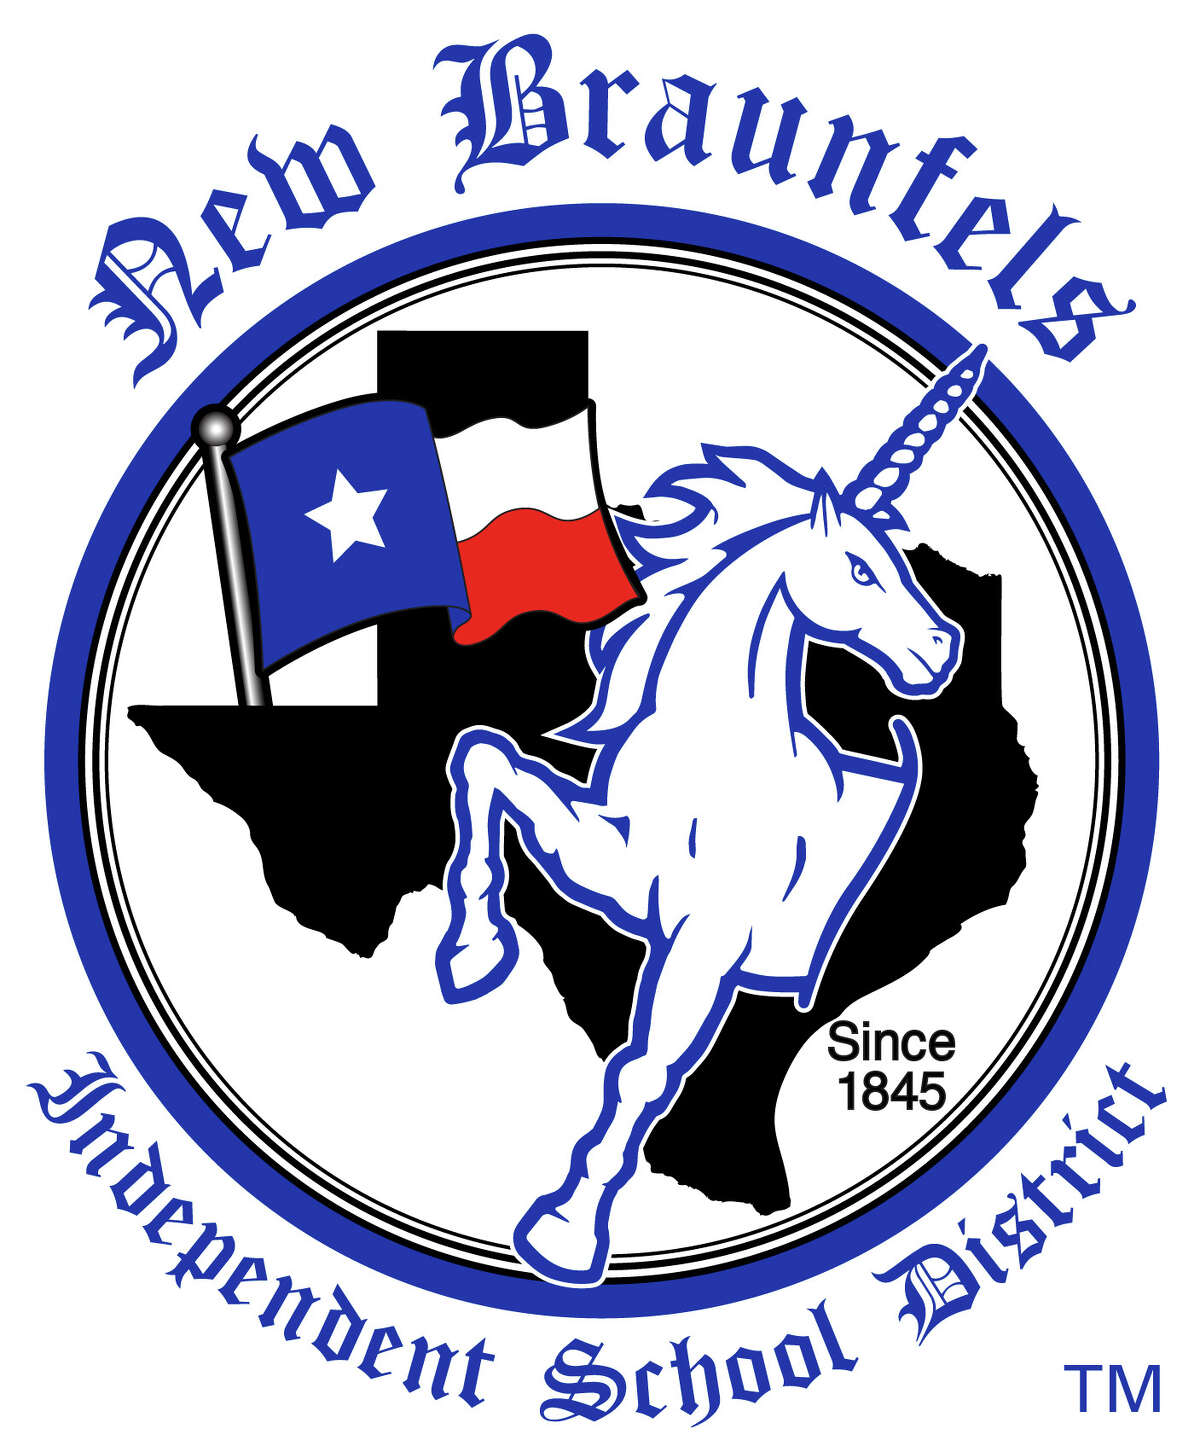 After years of peppering yearbooks and district materials with disparate logos, New Braunfels ISD's board of trustees voted to seek a state-level trademark for their unicorn emblem. This is the official version approved by the district's board of trustees Monday night.